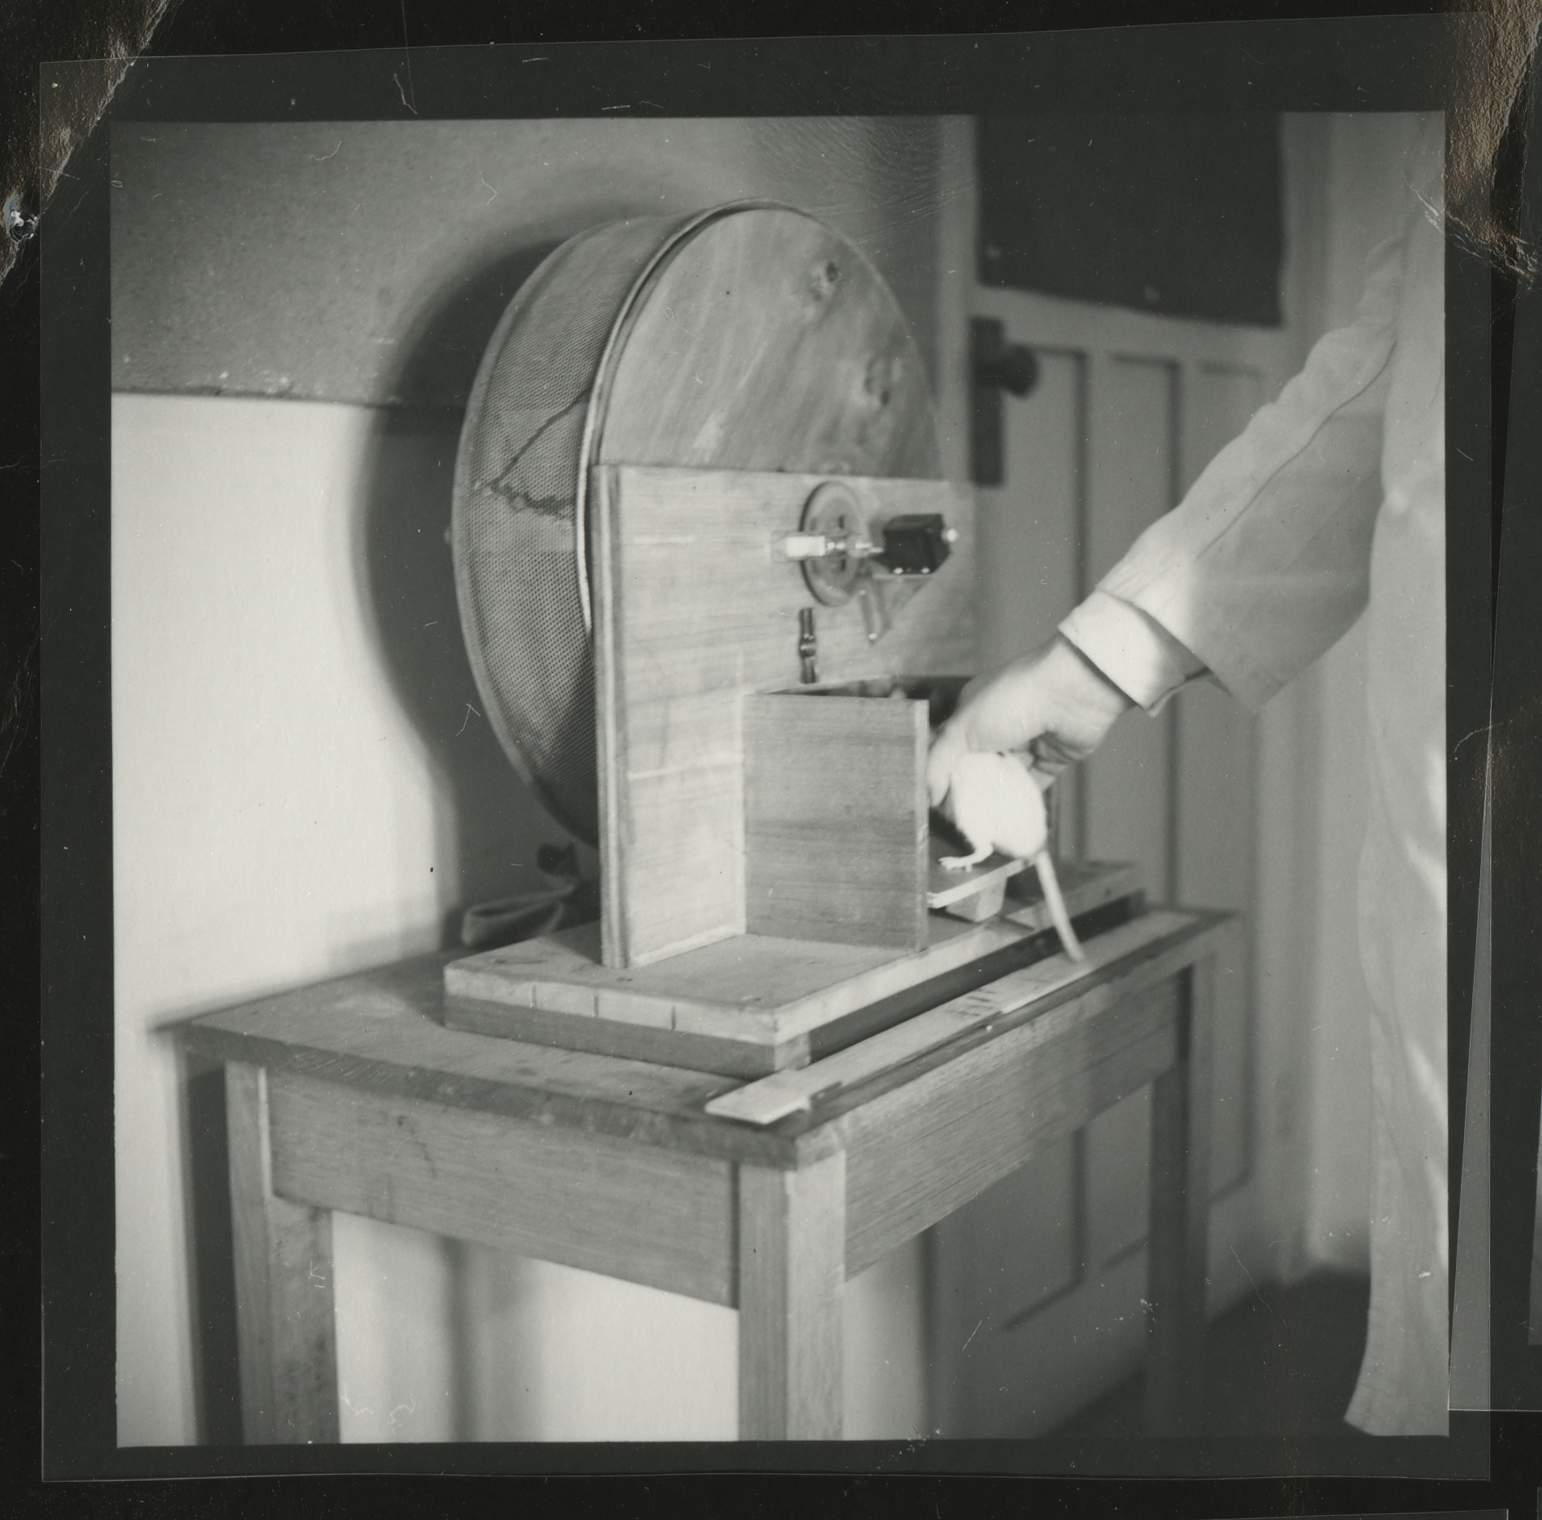 Hooded rat and laboratory equipment, University of Melbourne Department of Psychology, 'Tin Hut' laboratory, Tin Alley